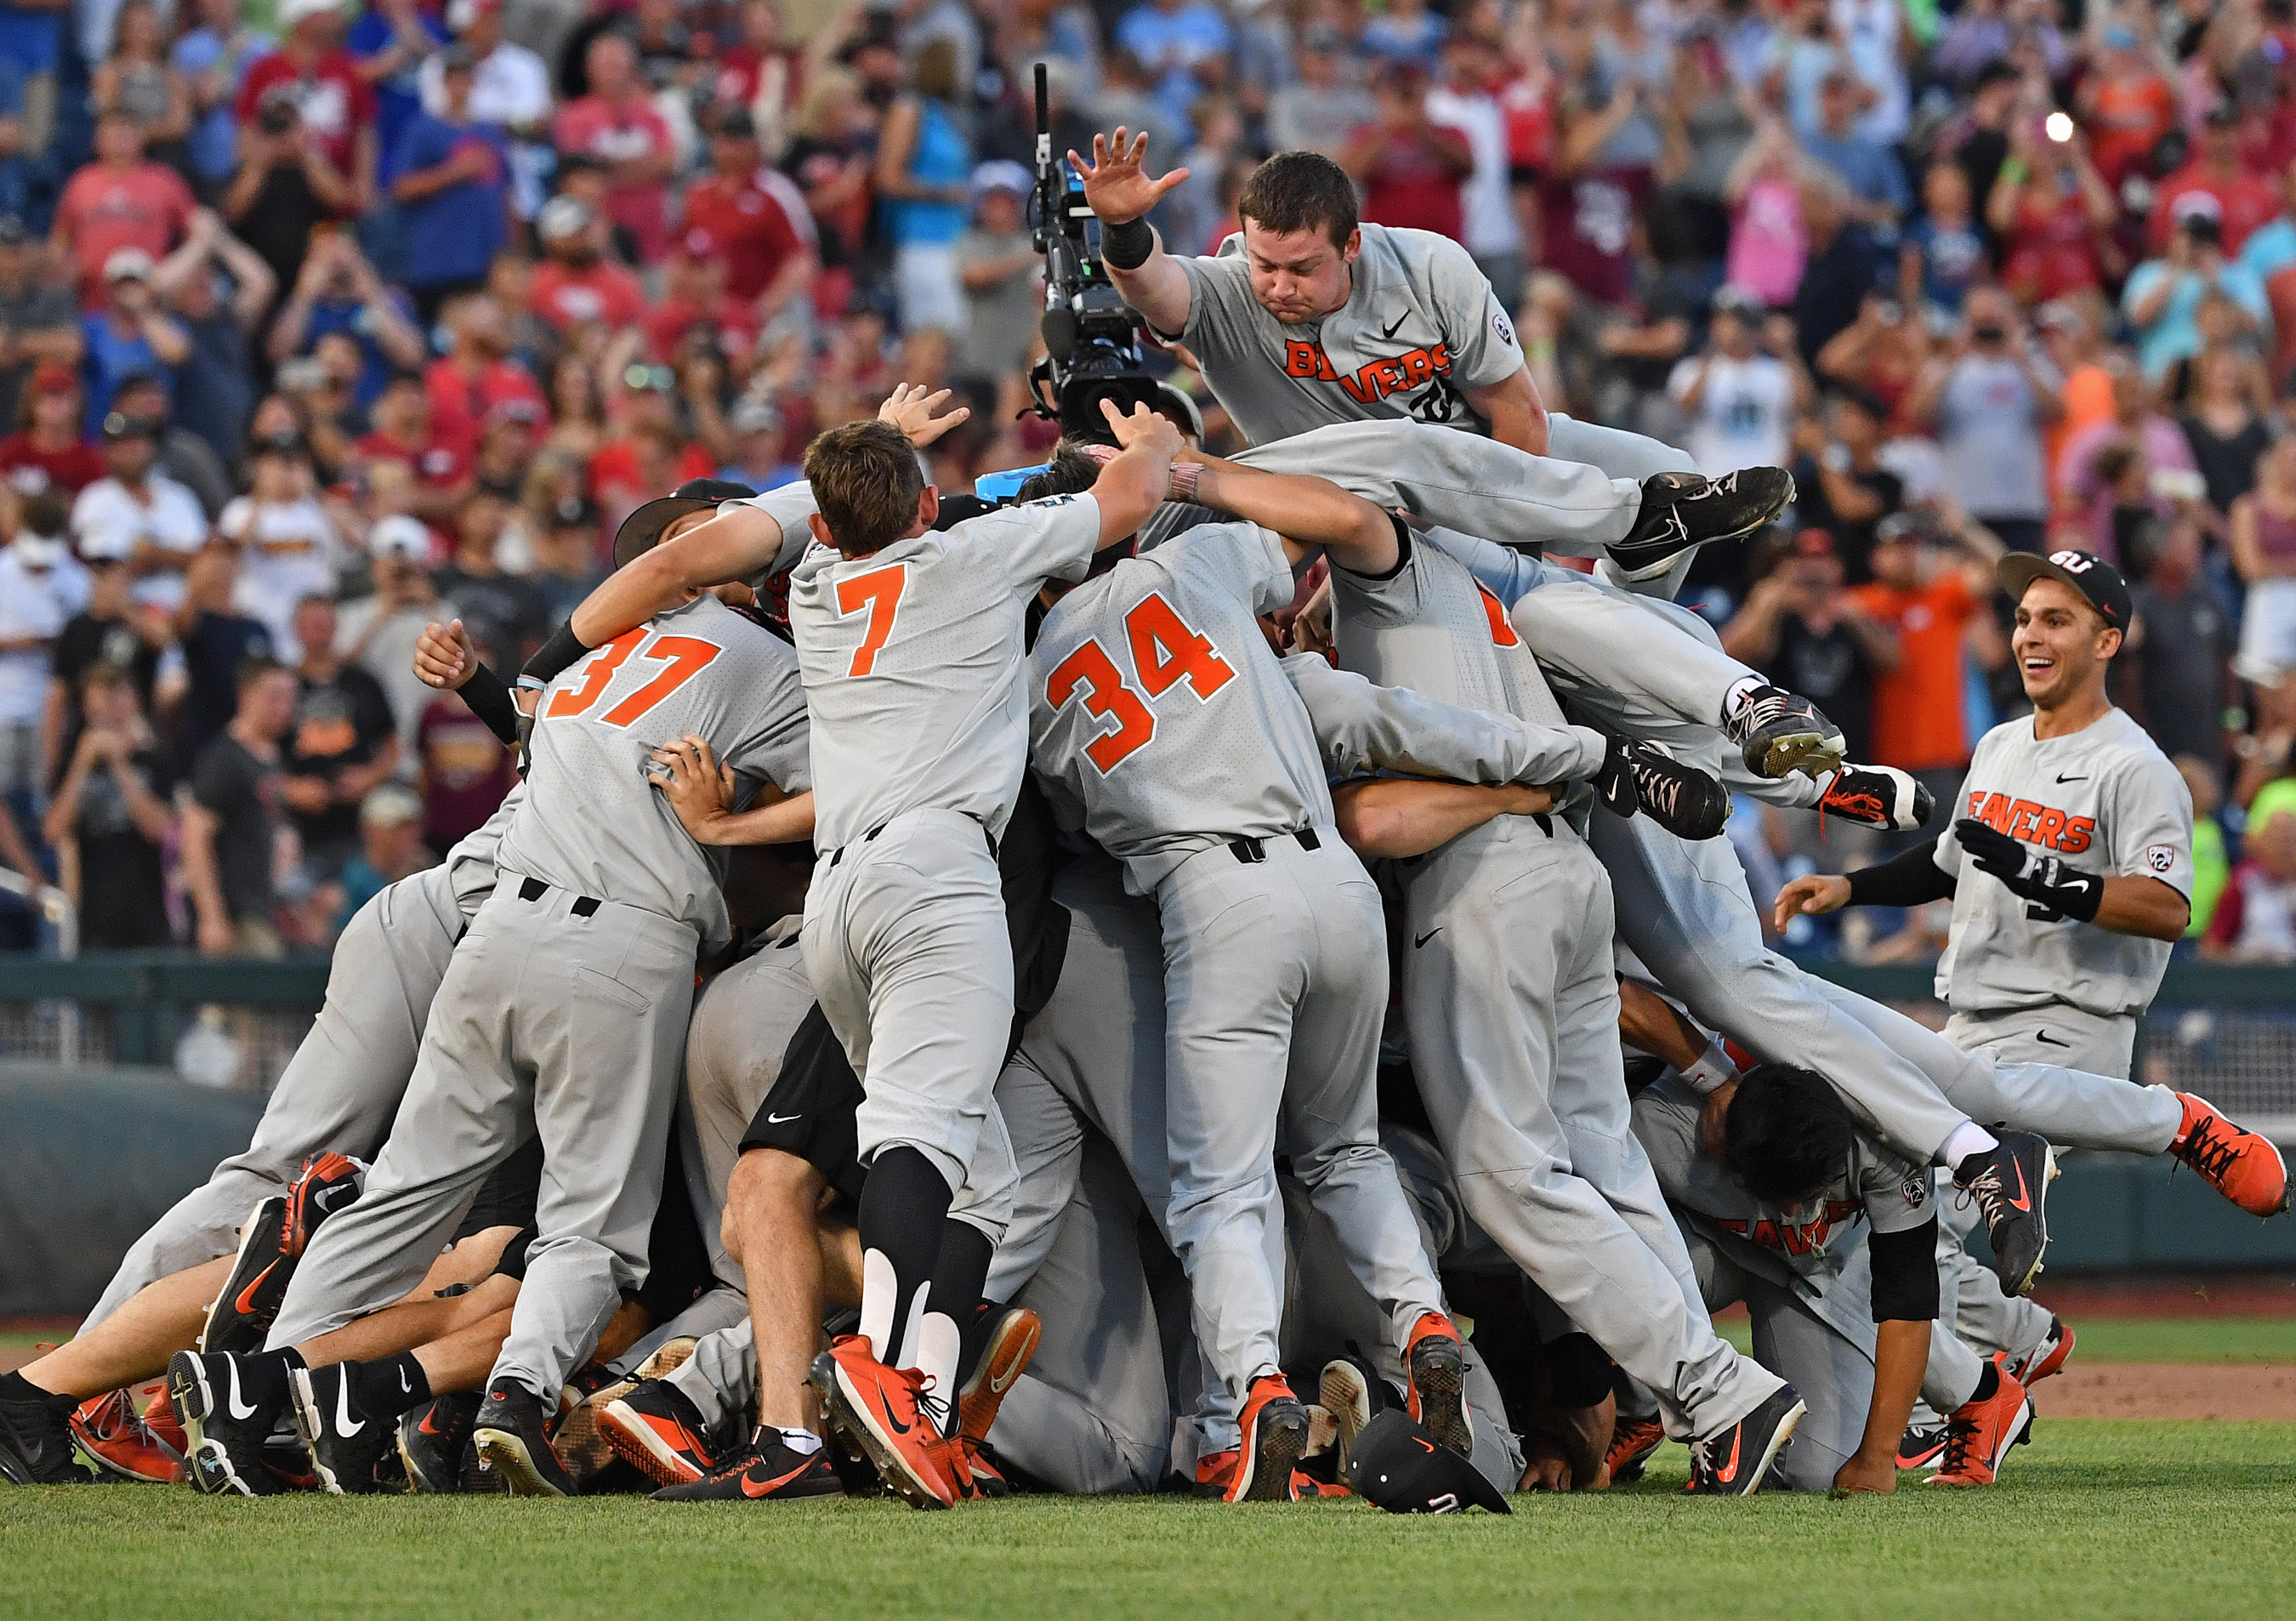 Oregon_state_champions_getty